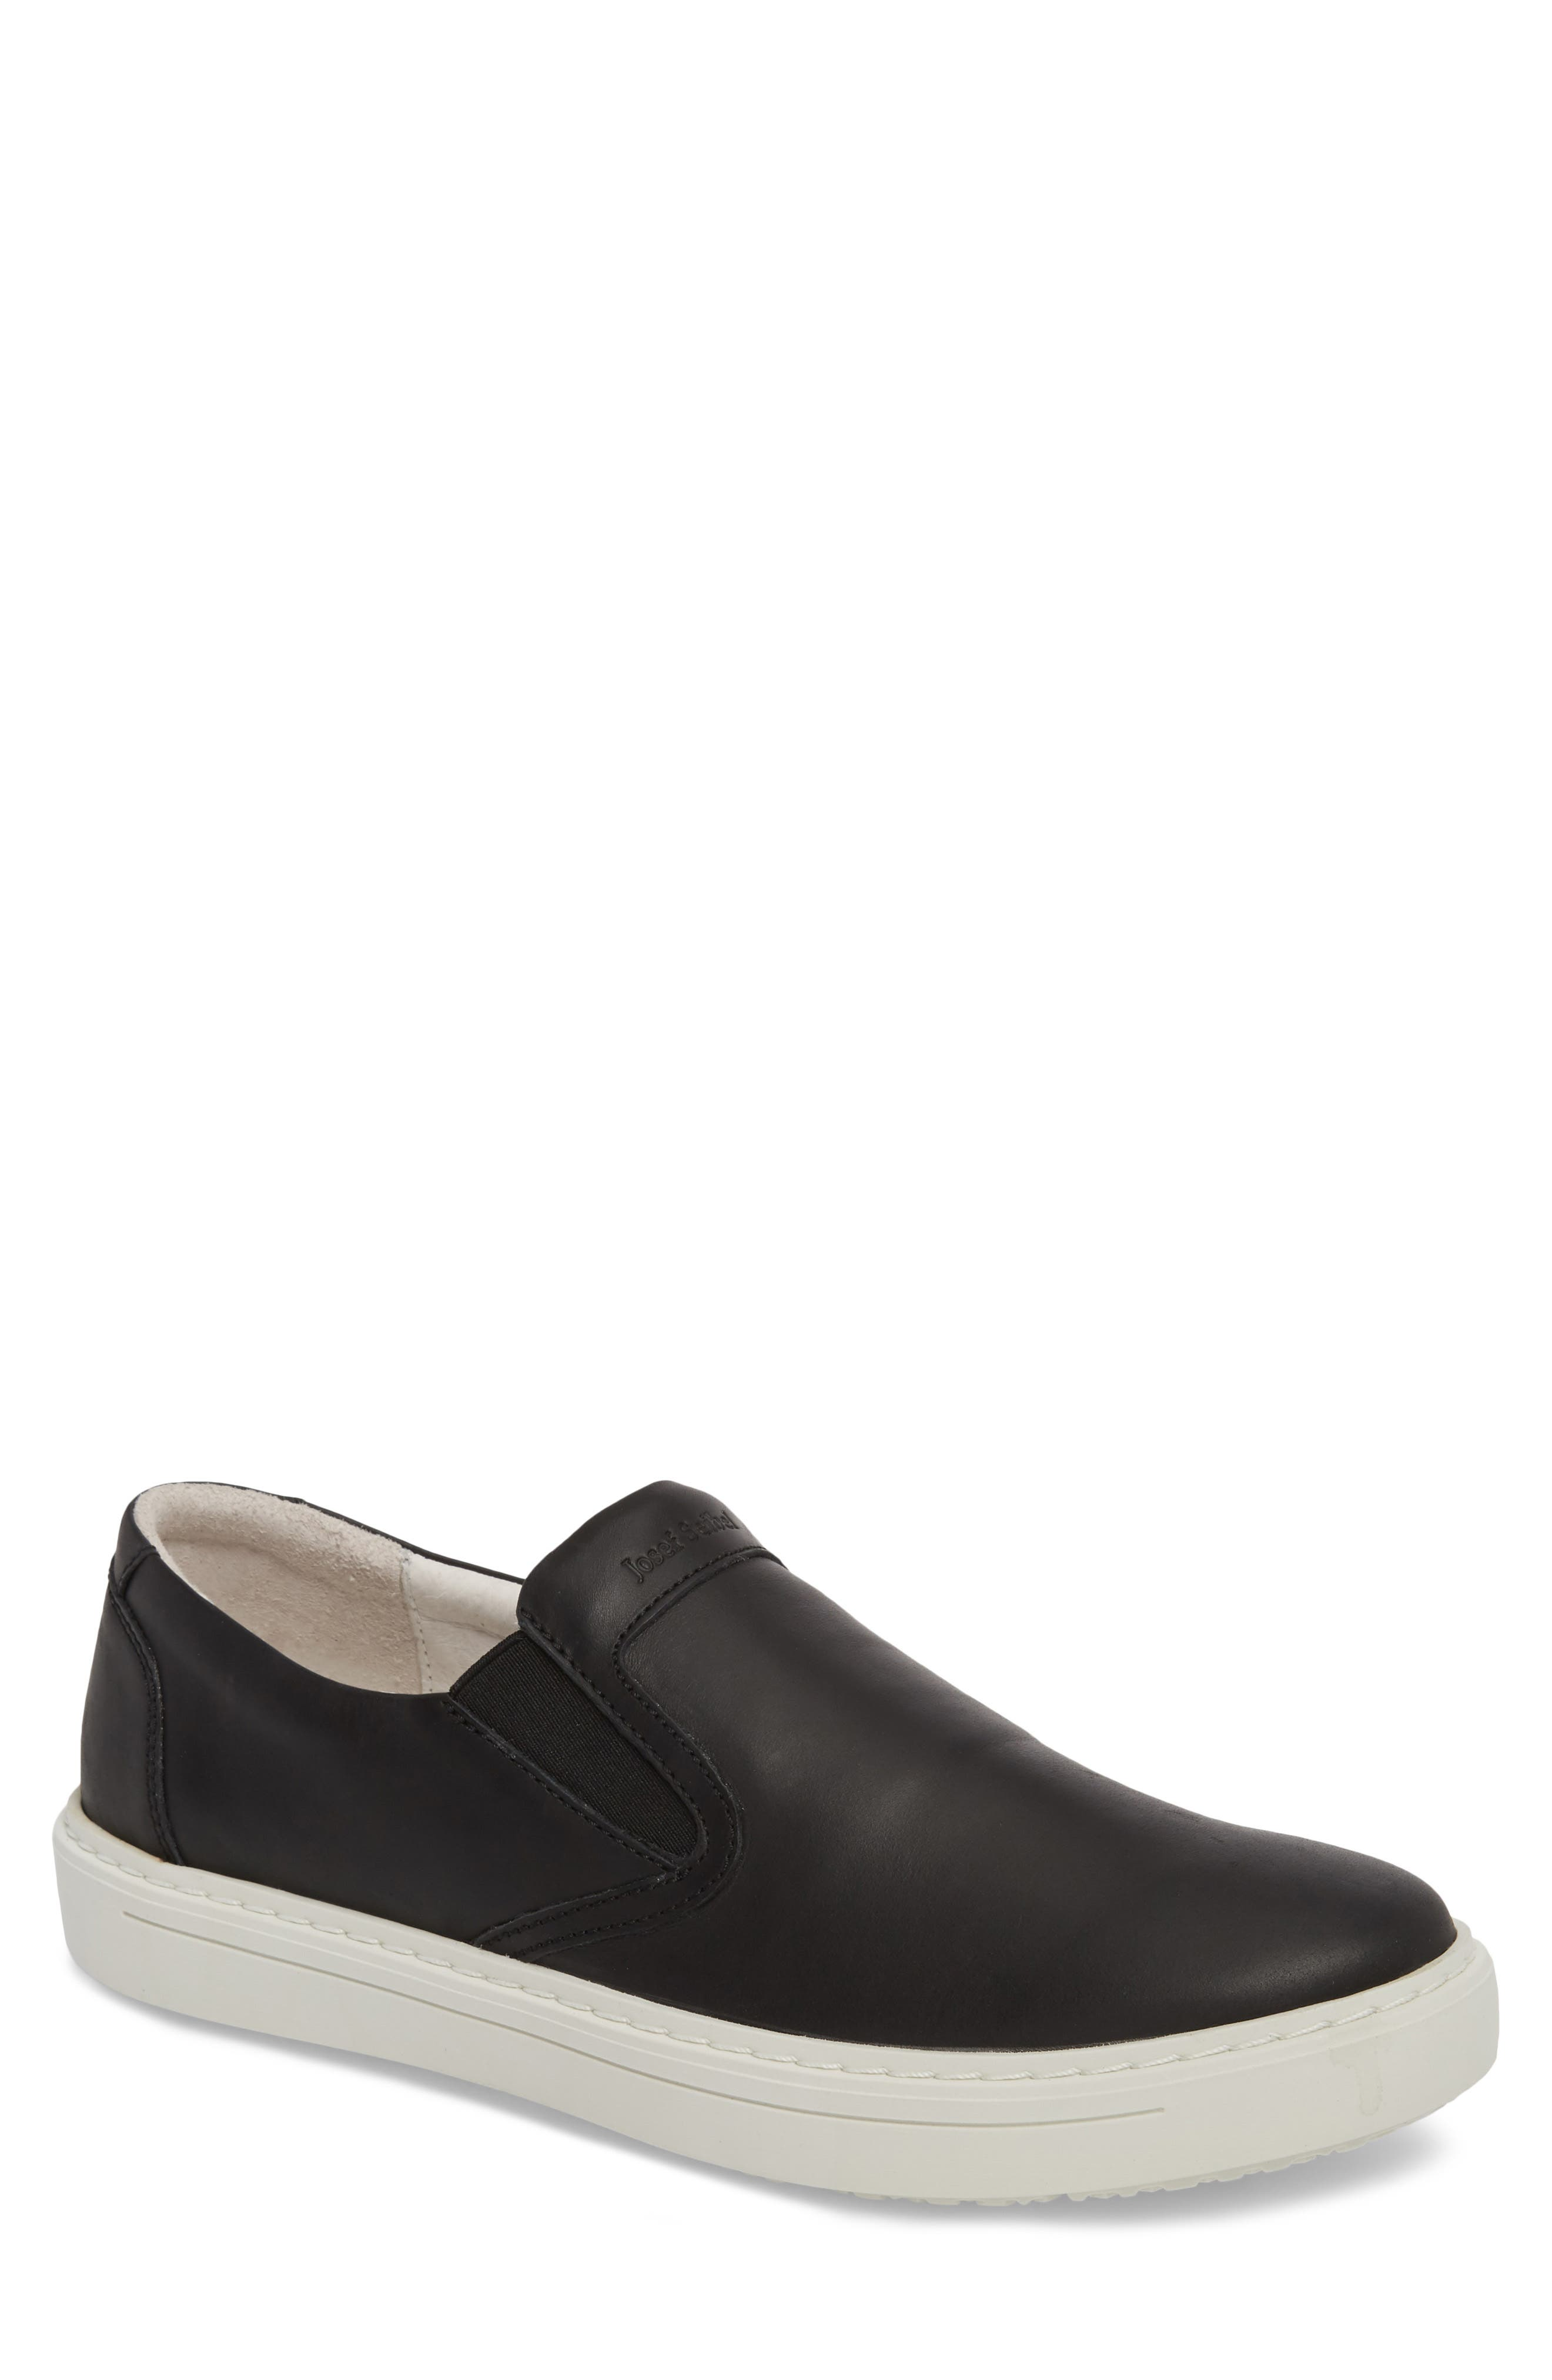 Quentin 15 Slip-On Sneaker,                         Main,                         color, Black Leather